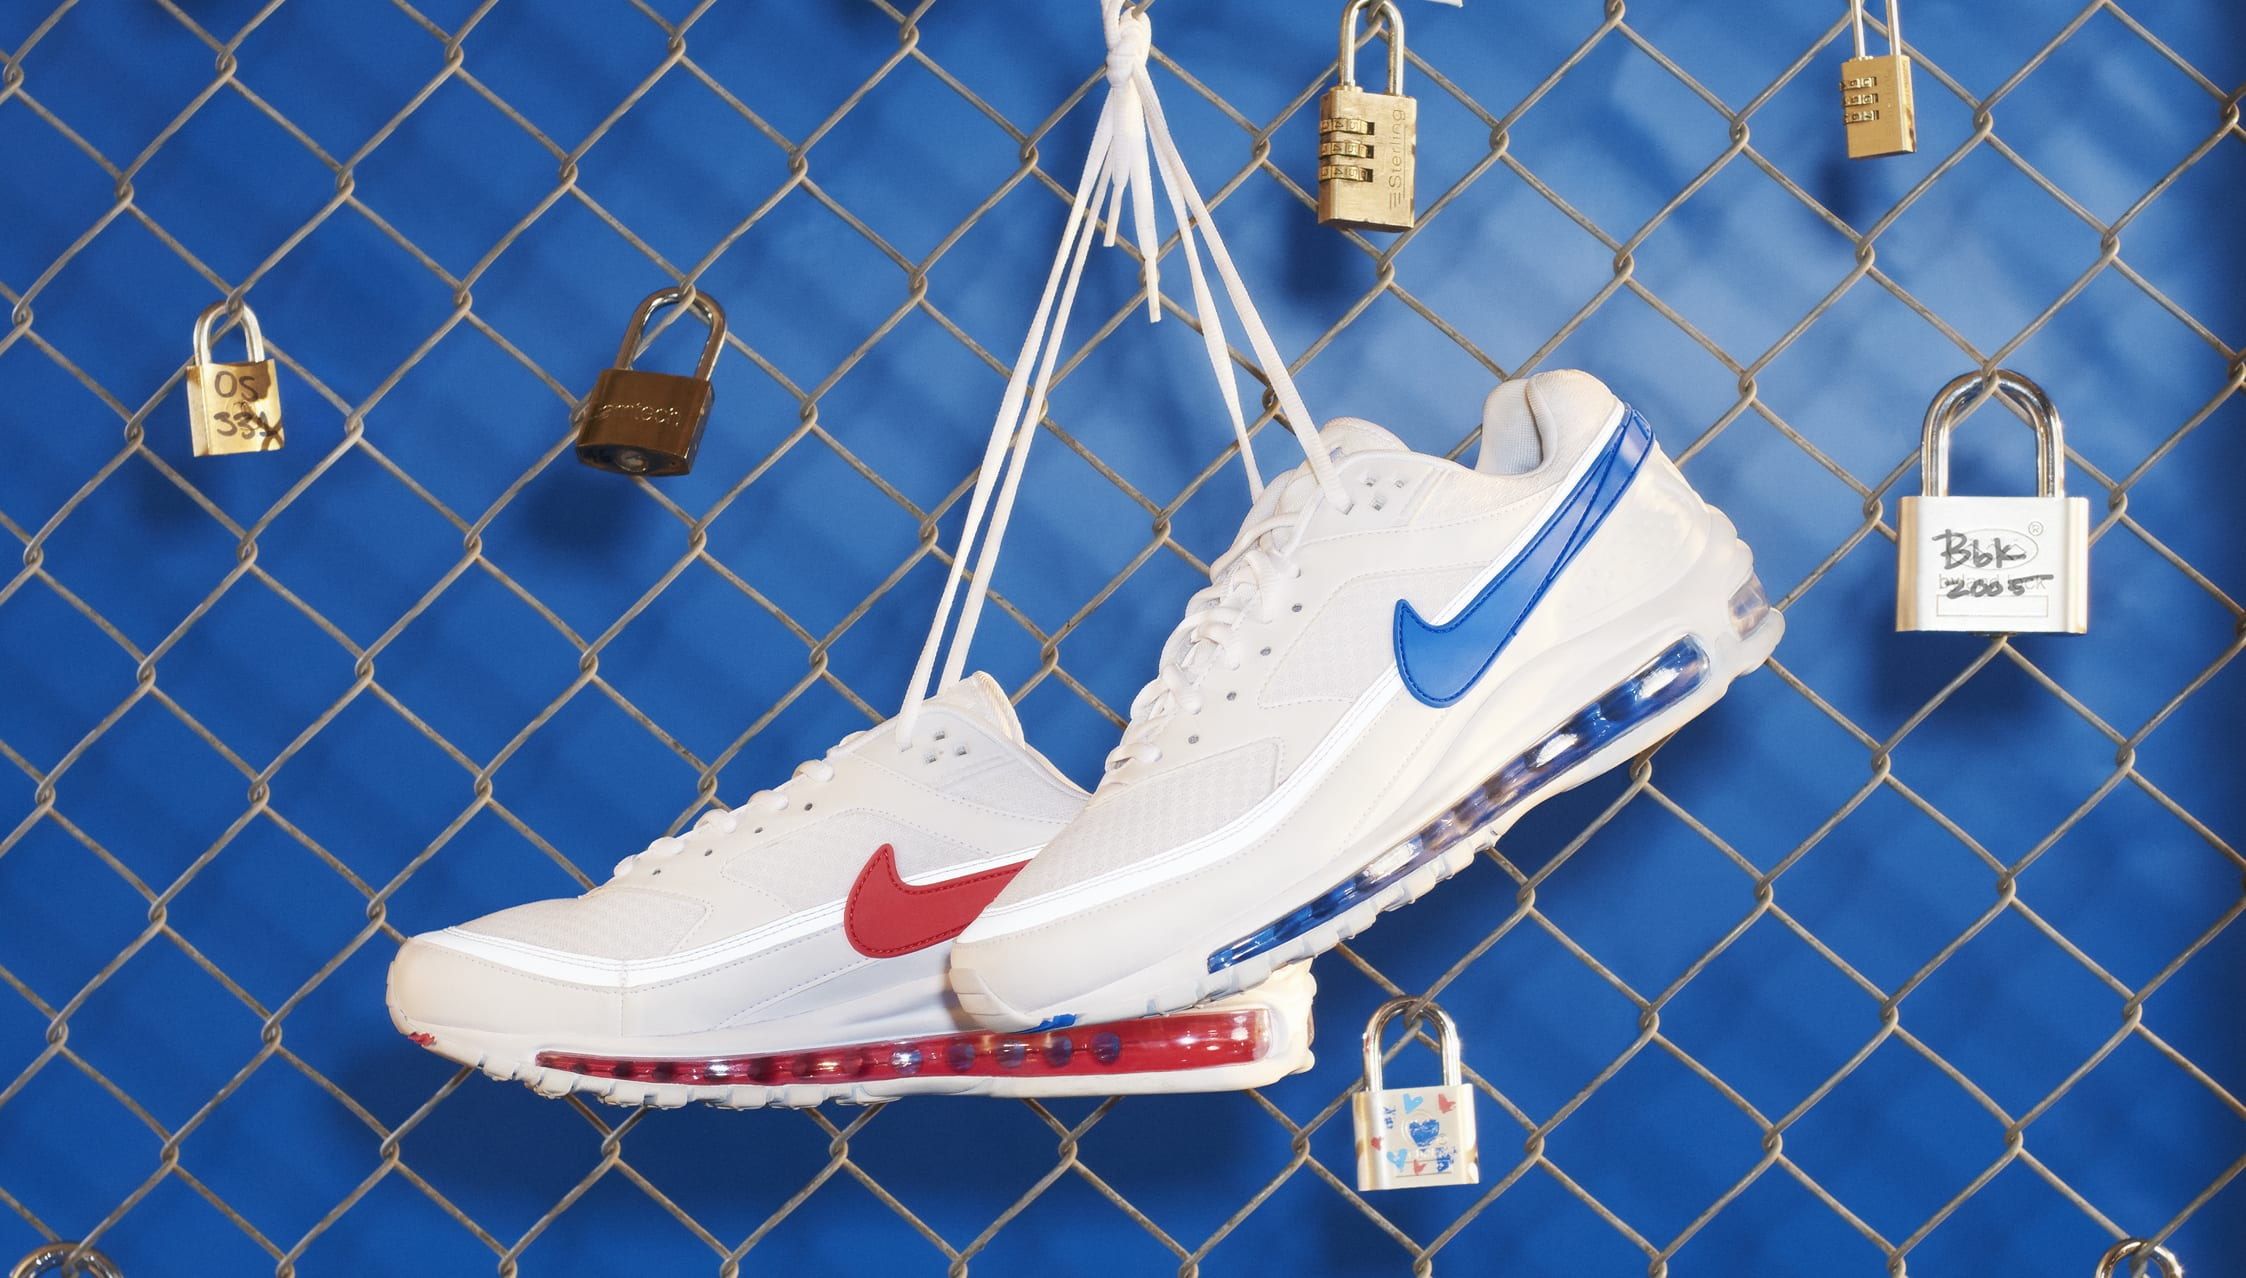 Skepta x Nike Air Mad 97 BW SK (Paire)